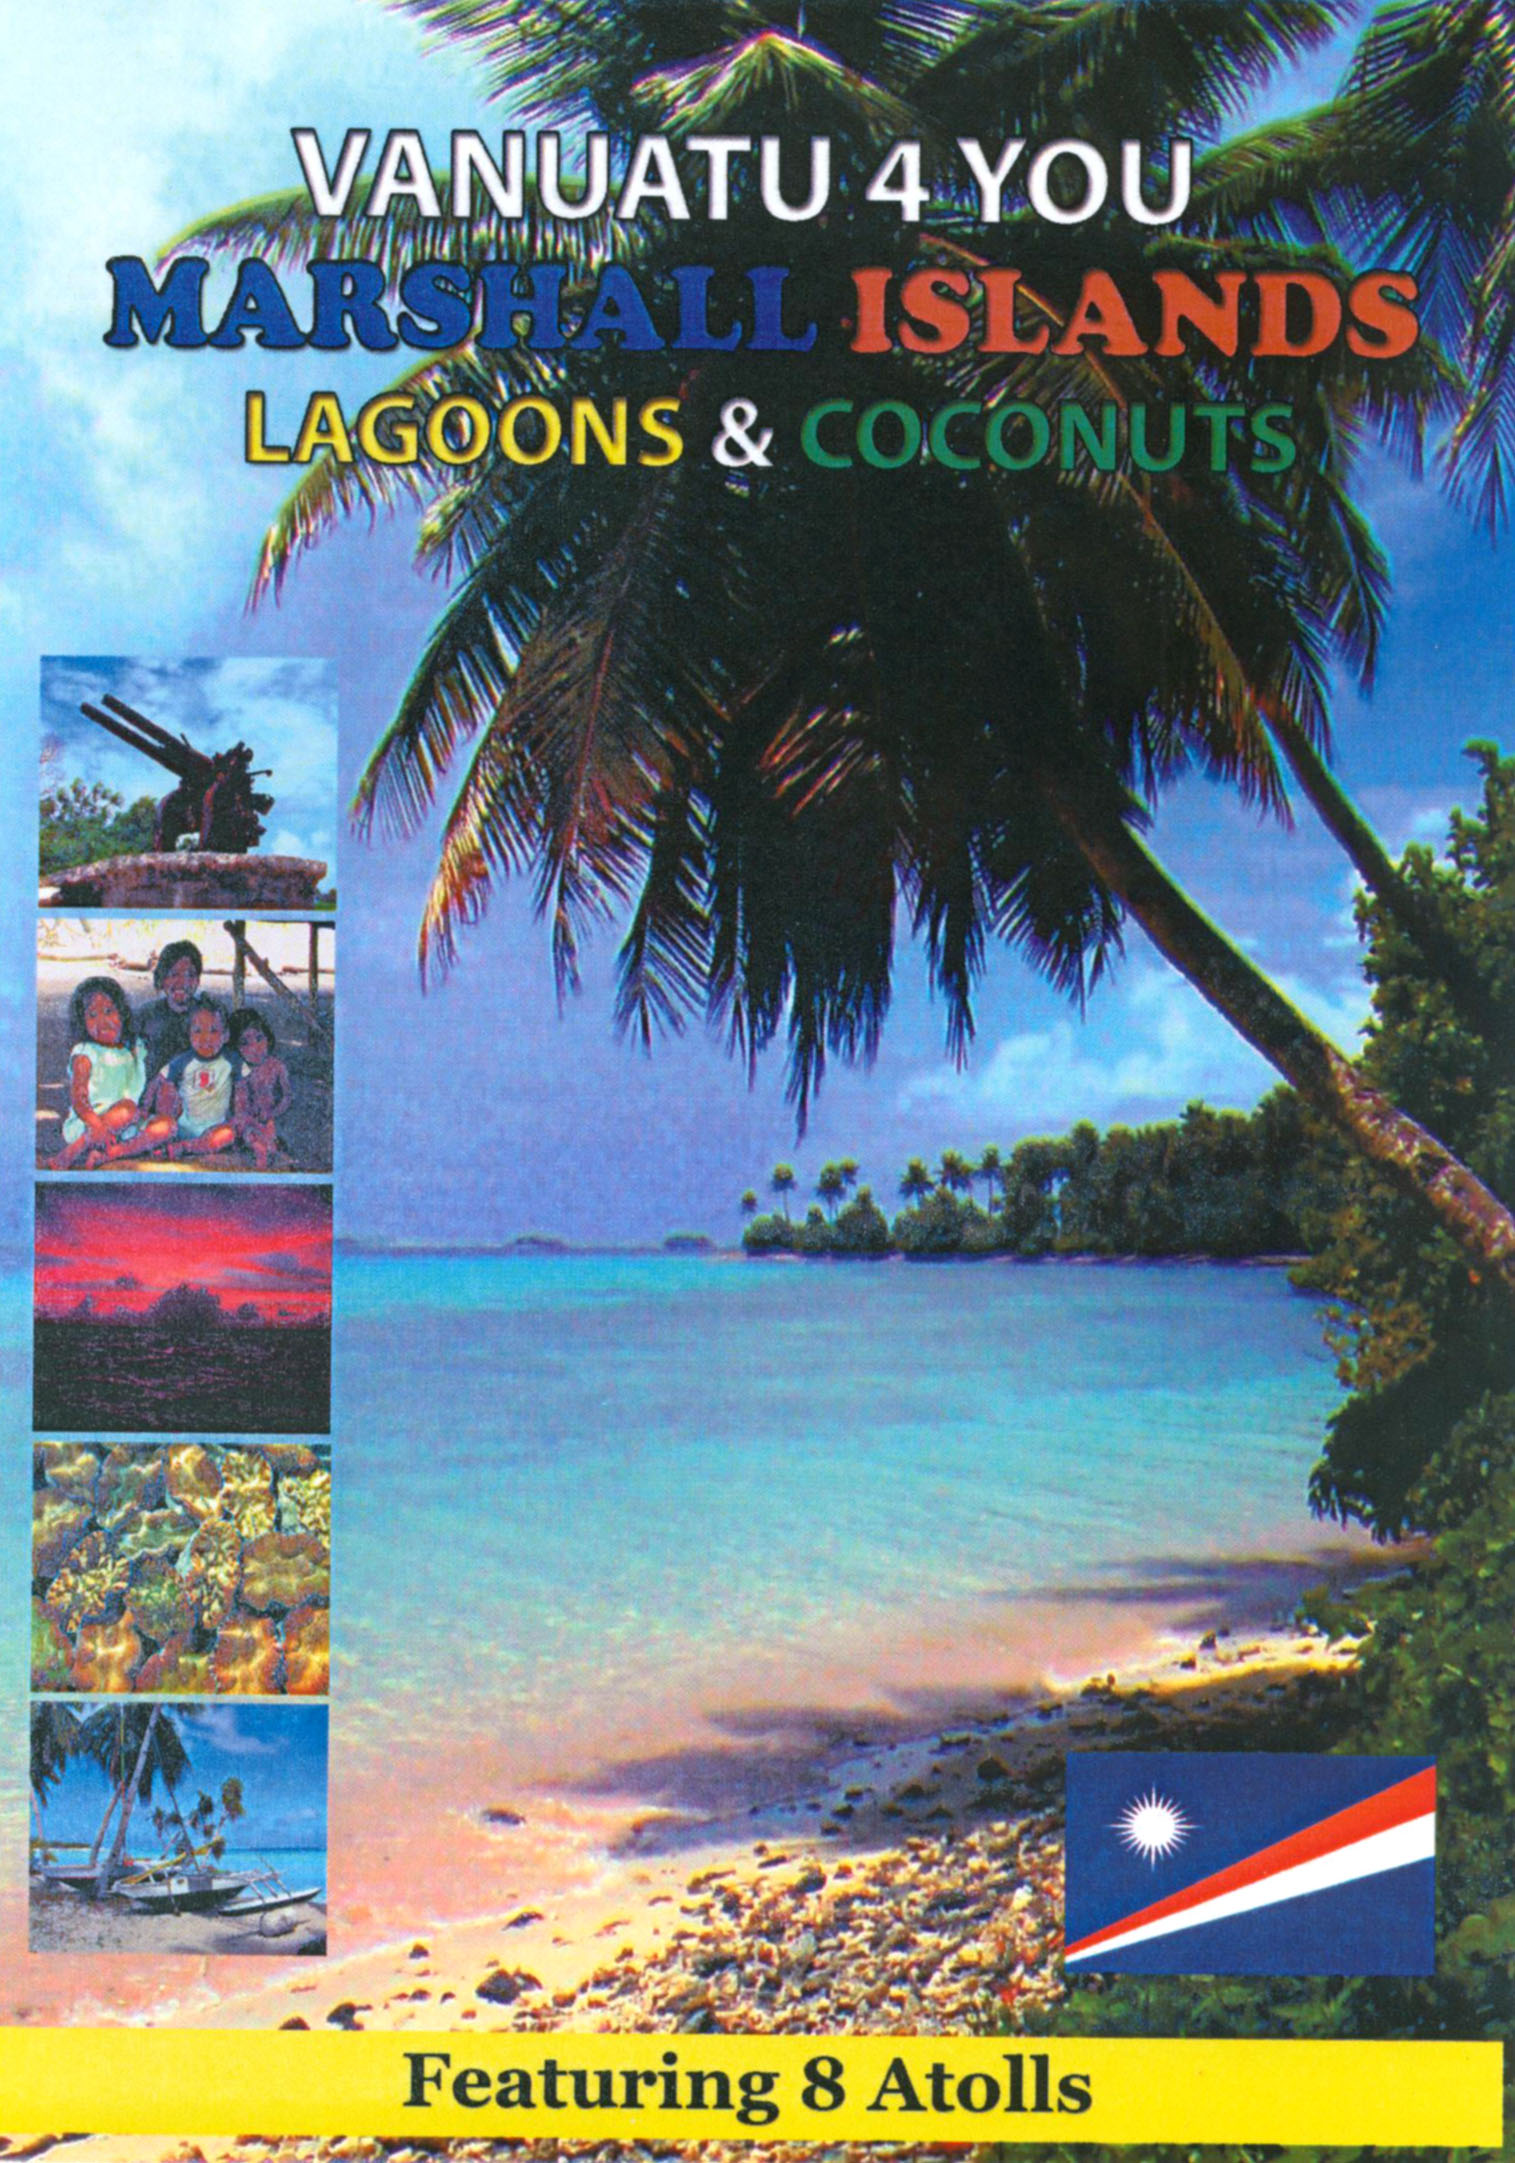 Vanuatu 4 You: Marshall Islands - Lagoons & Coconuts